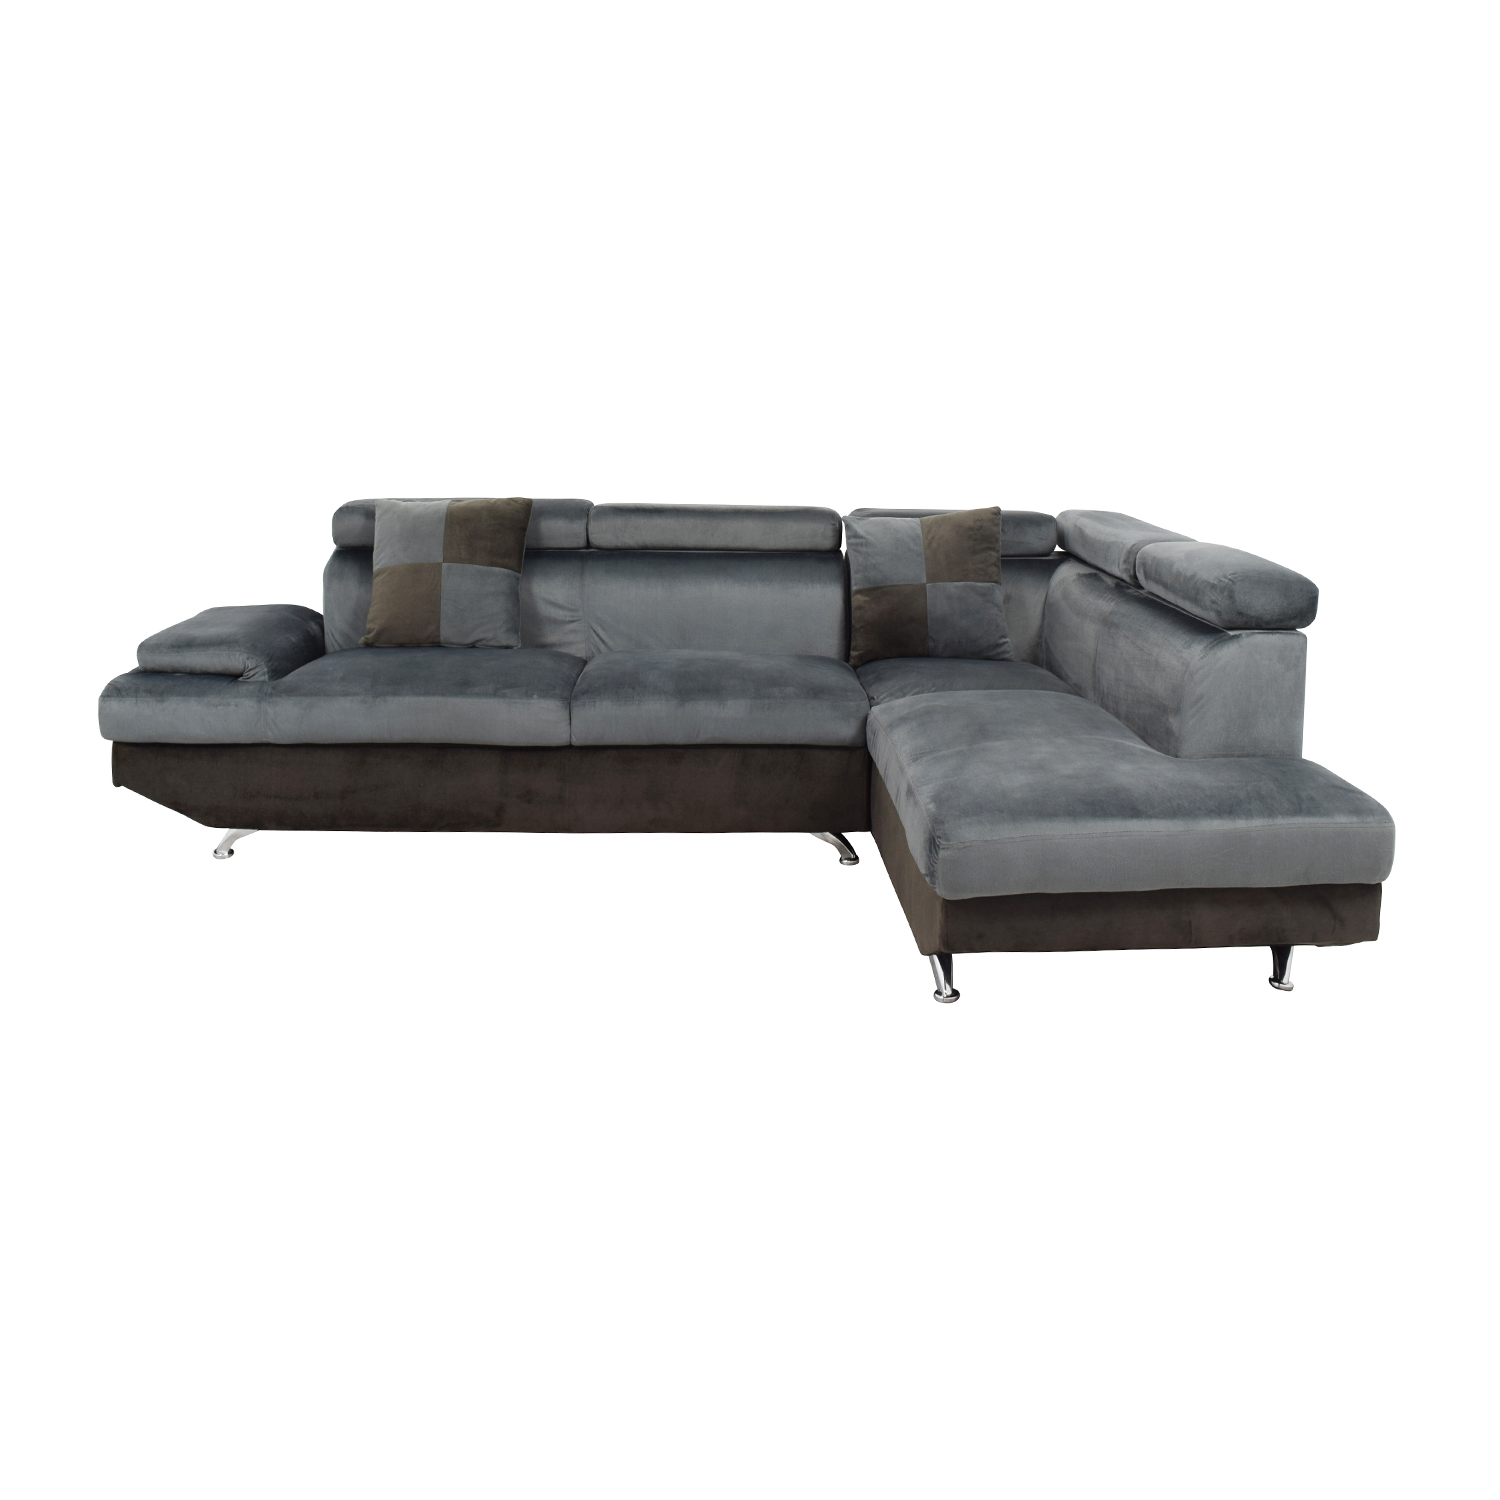 sectional sofa and design dark with grey couch recliner home ideas microfiber decorating chaise